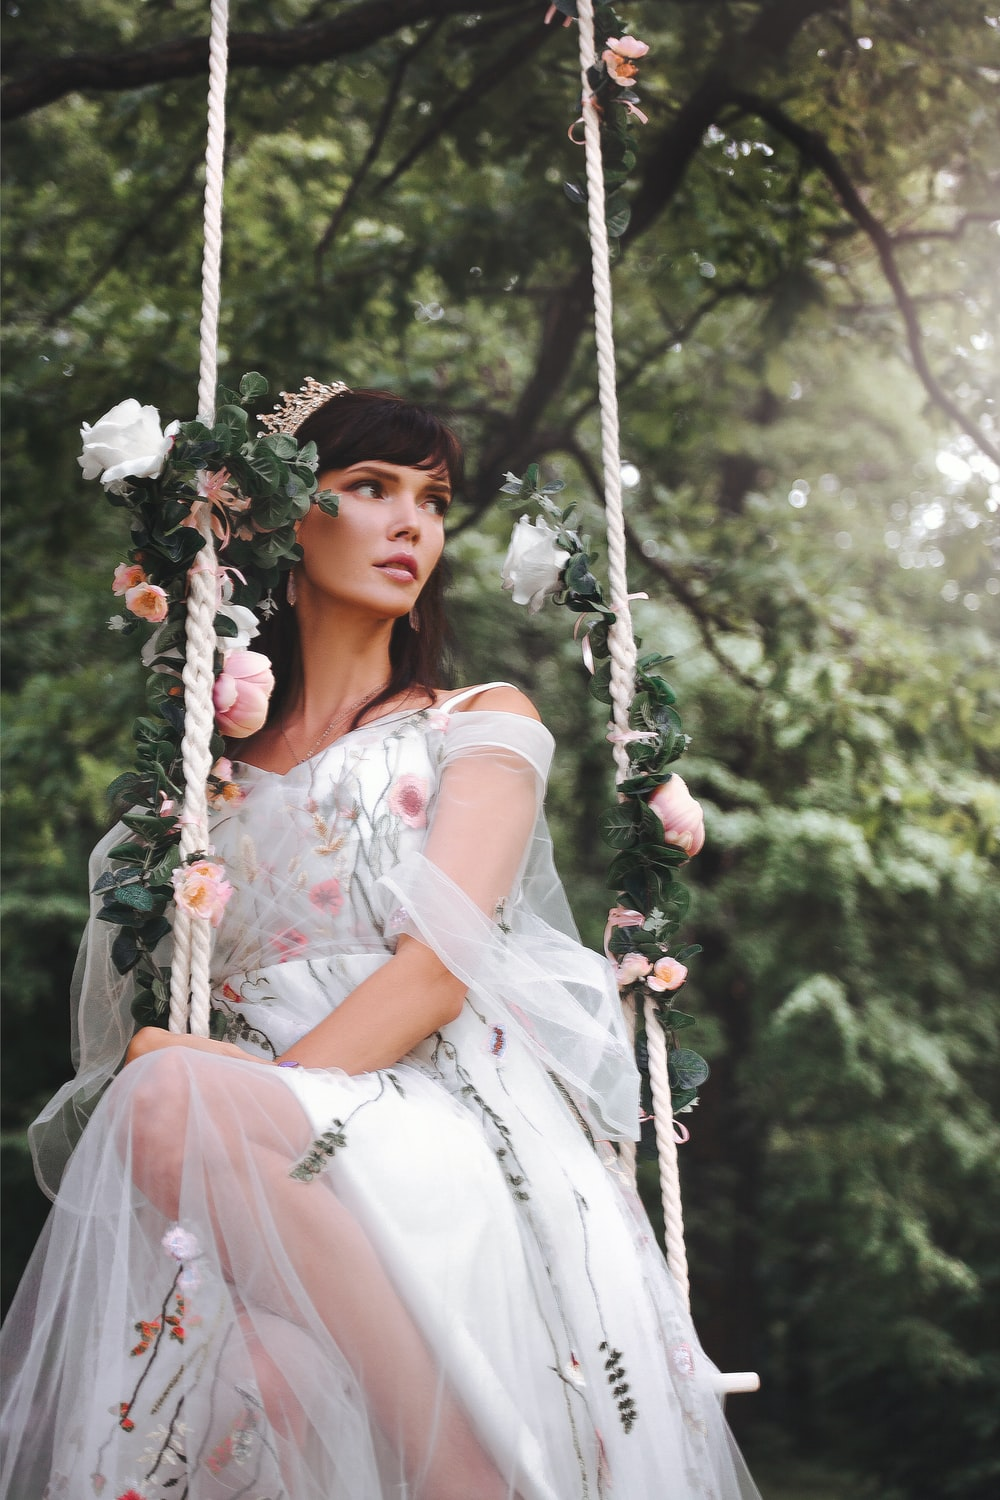 woman wearing wedding gown sitting on outdoor swing near tall trees